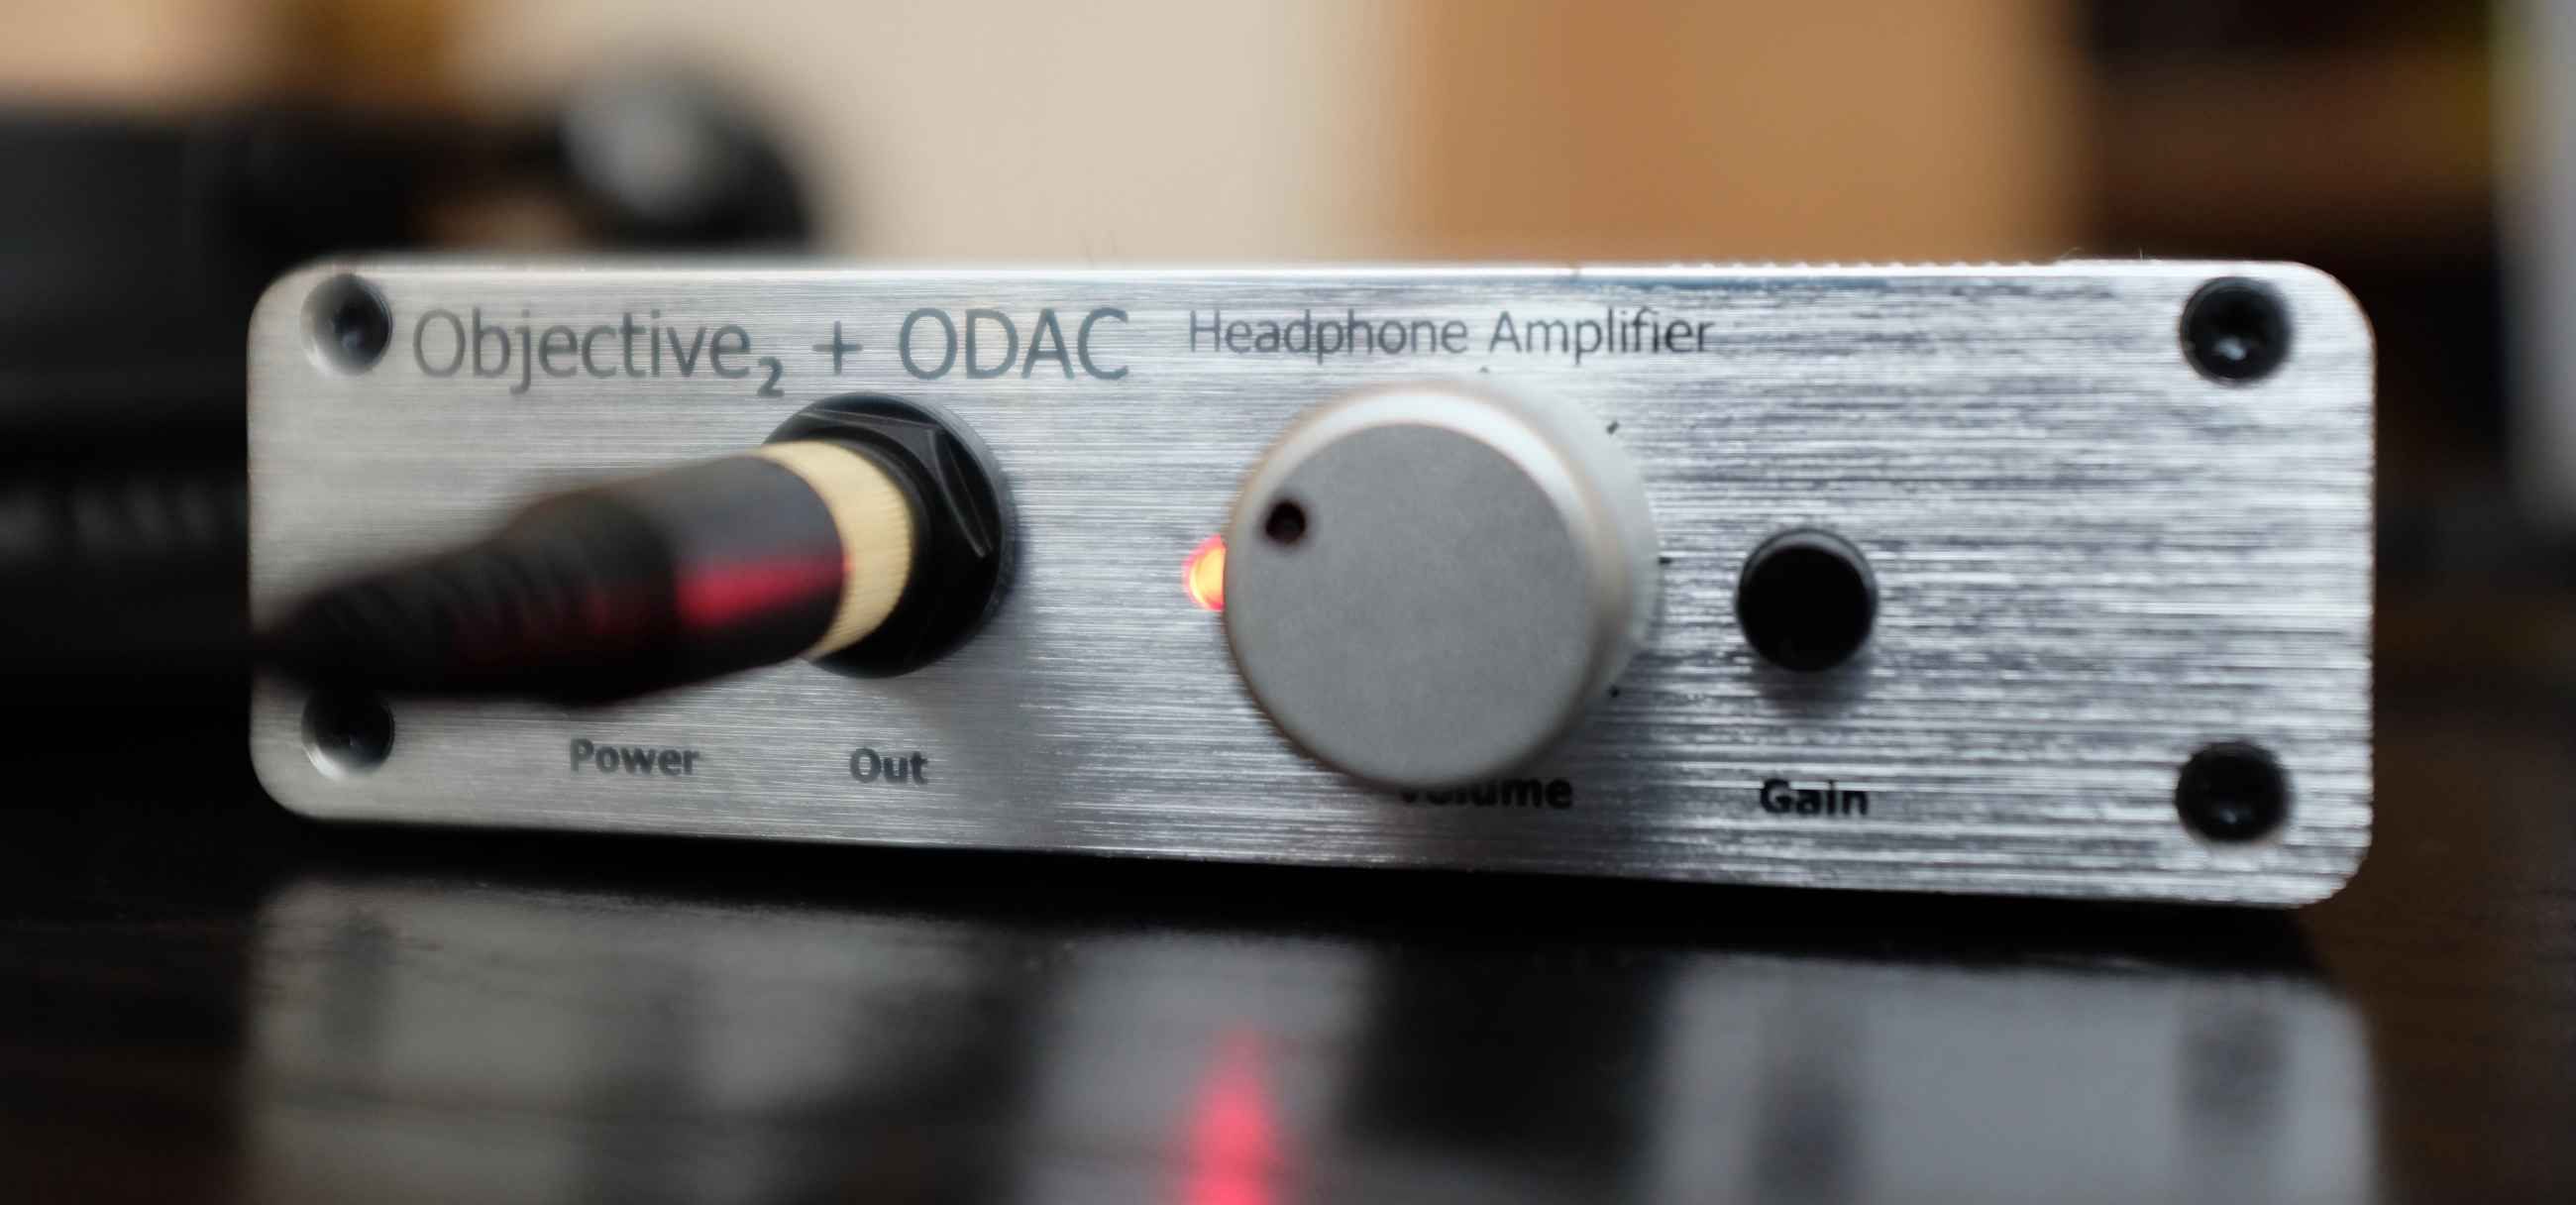 The Objective 2 headphone amplifier with integrated DAC